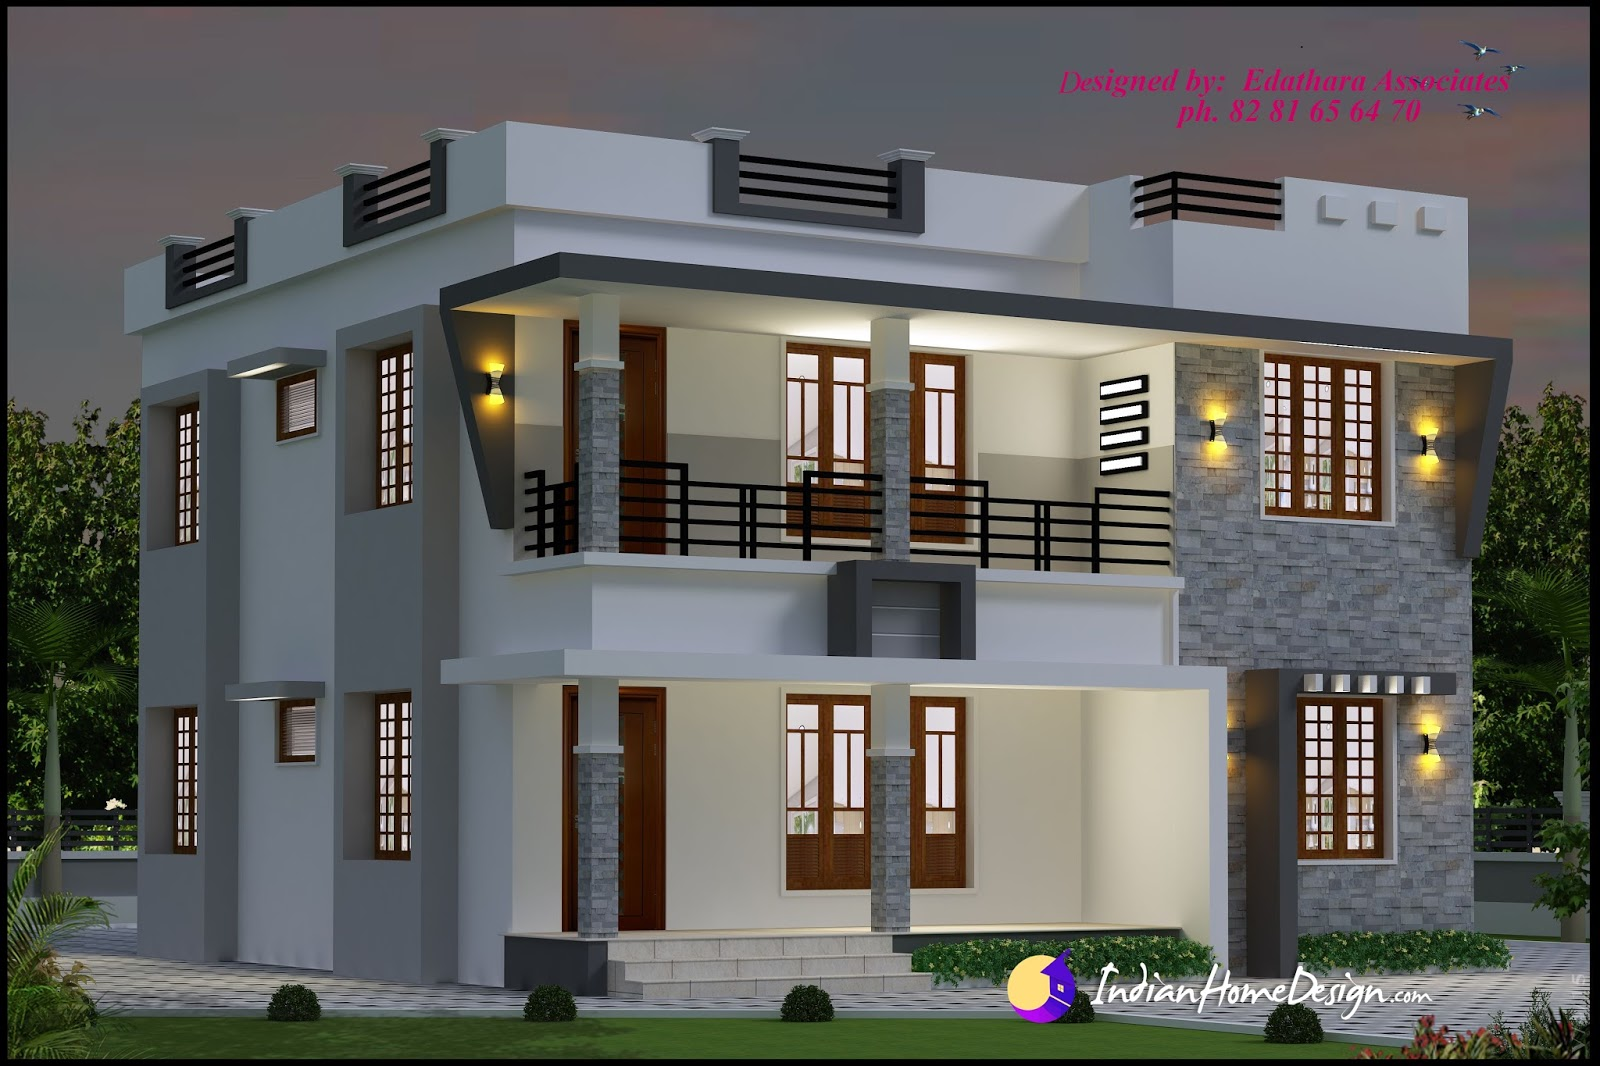 1696 sqft modern double floor kerala home design indian for Kerala home designs photos in double floor